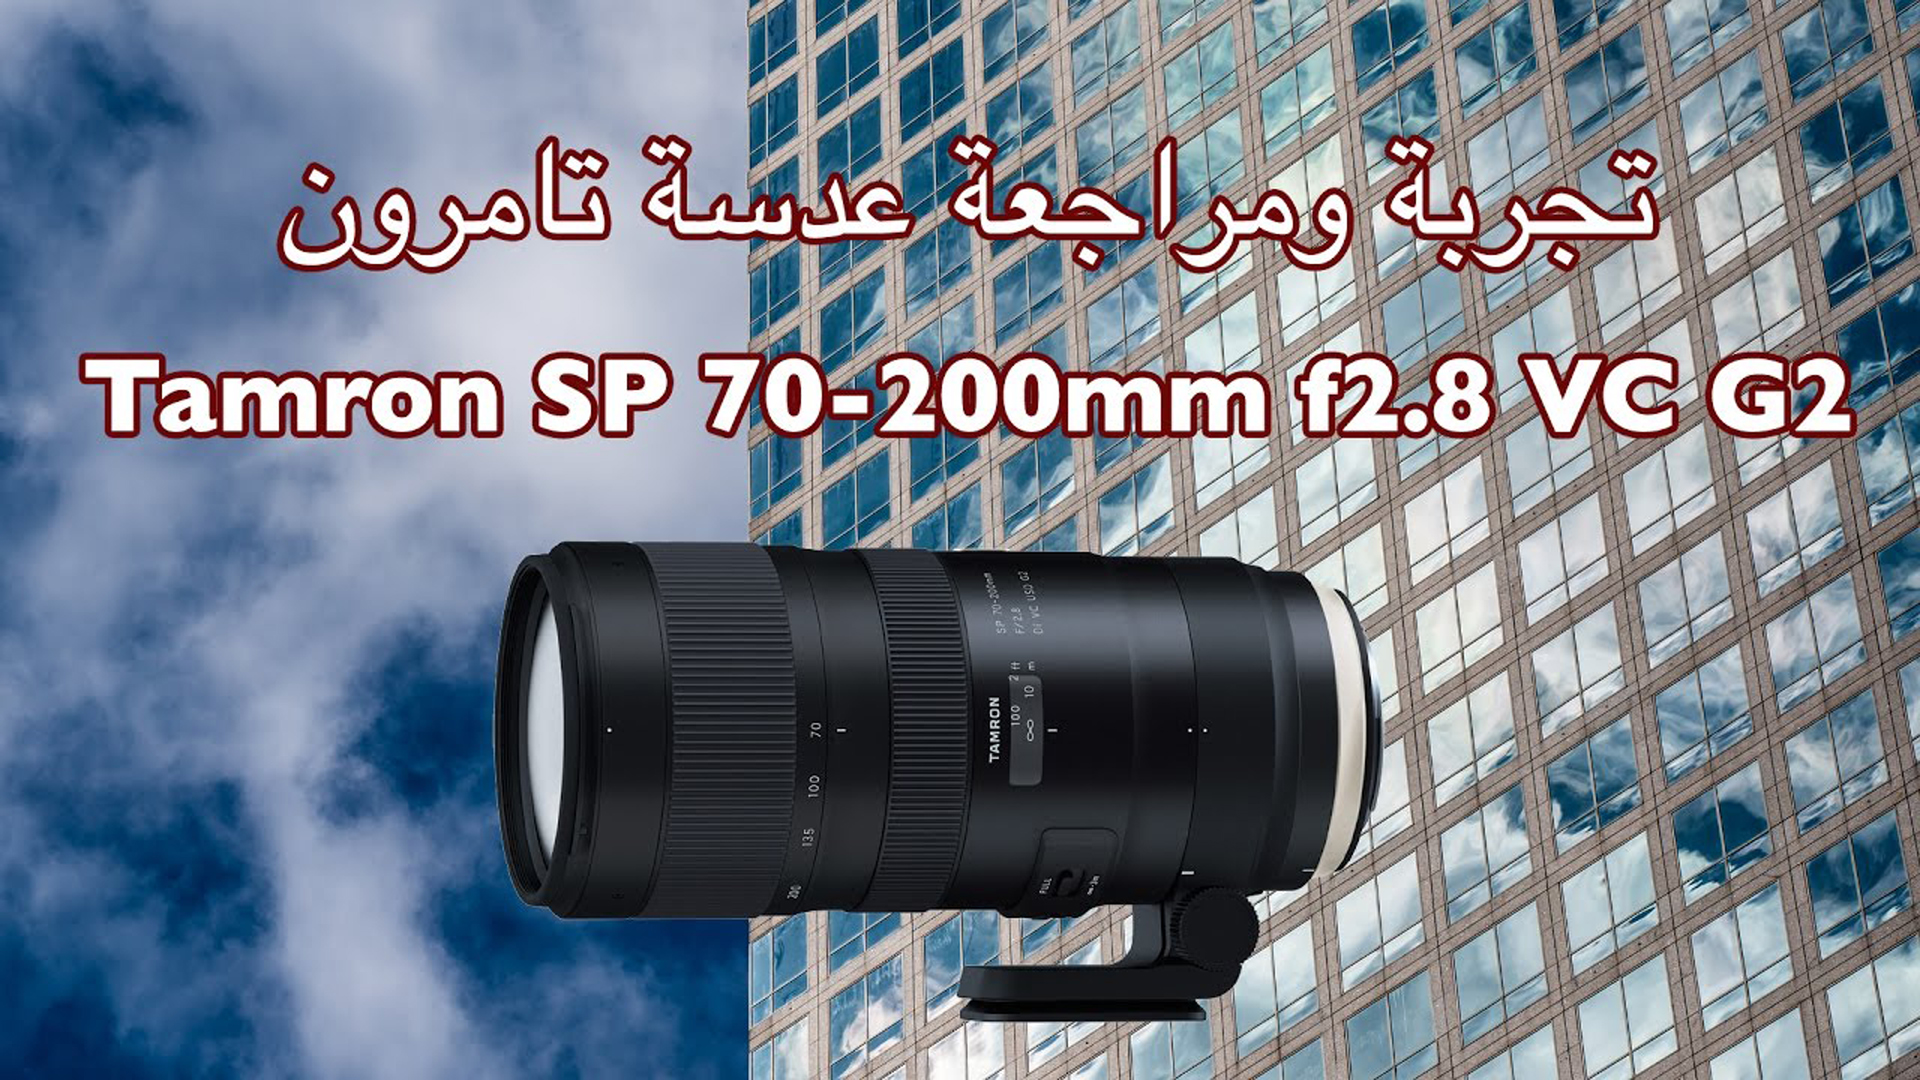 Tamron SP 70-200mm f2.8 VC USD G2